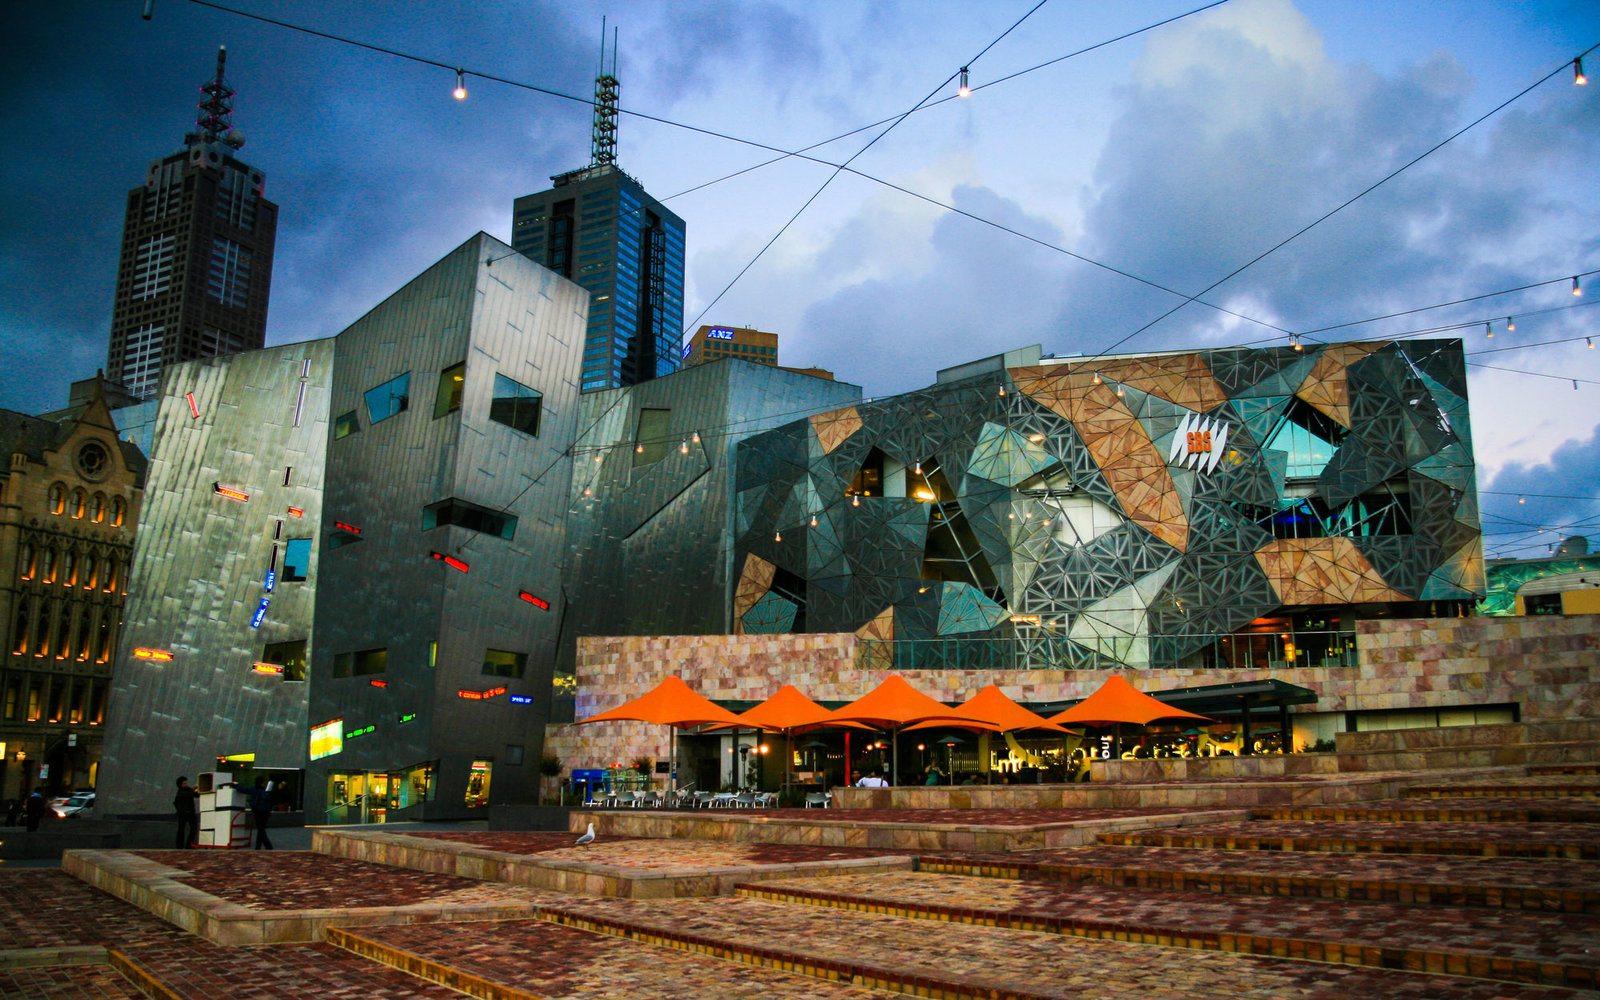 Federation Square of Melbourne, Australia